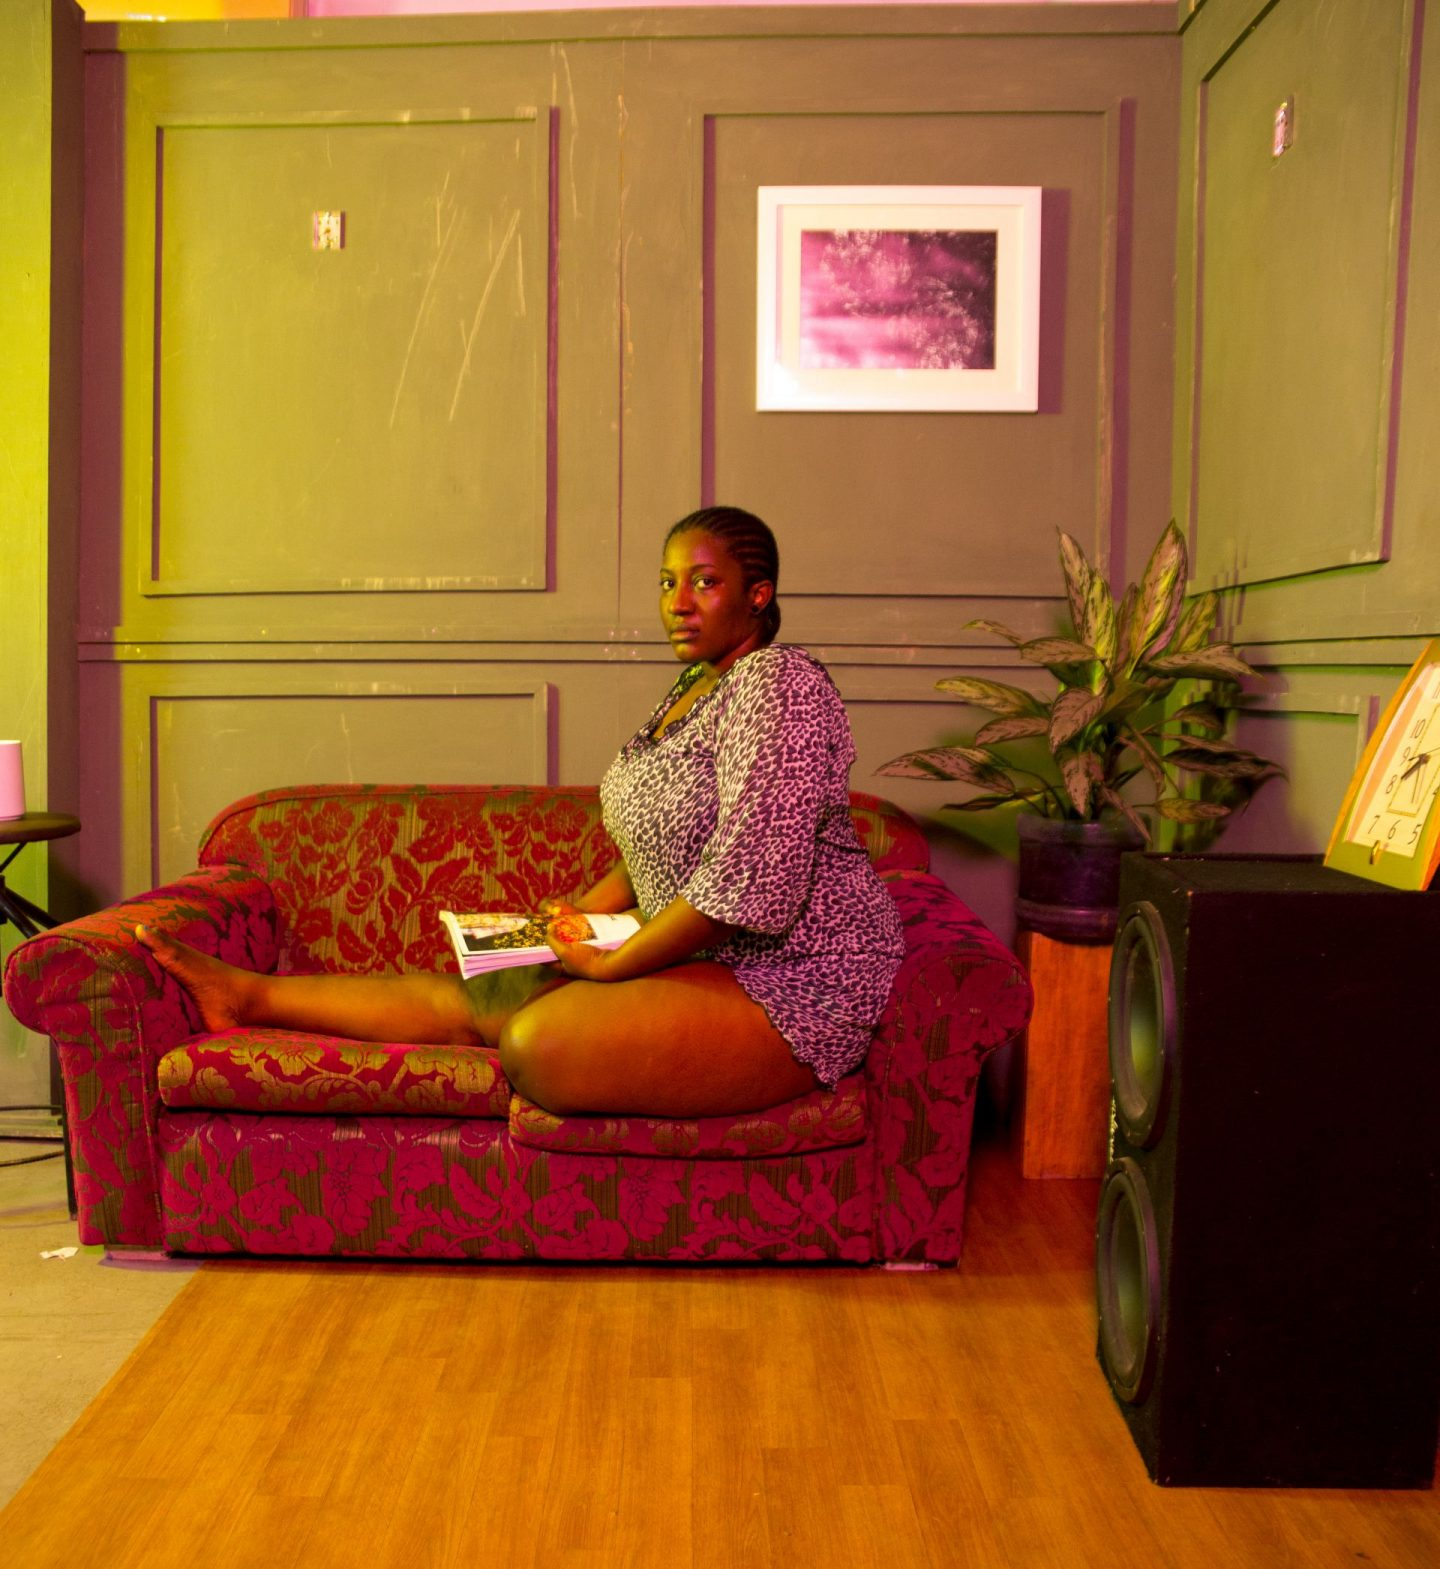 Black artists invite you into their living room for online exhibition 'No Shoes on My Carpet'